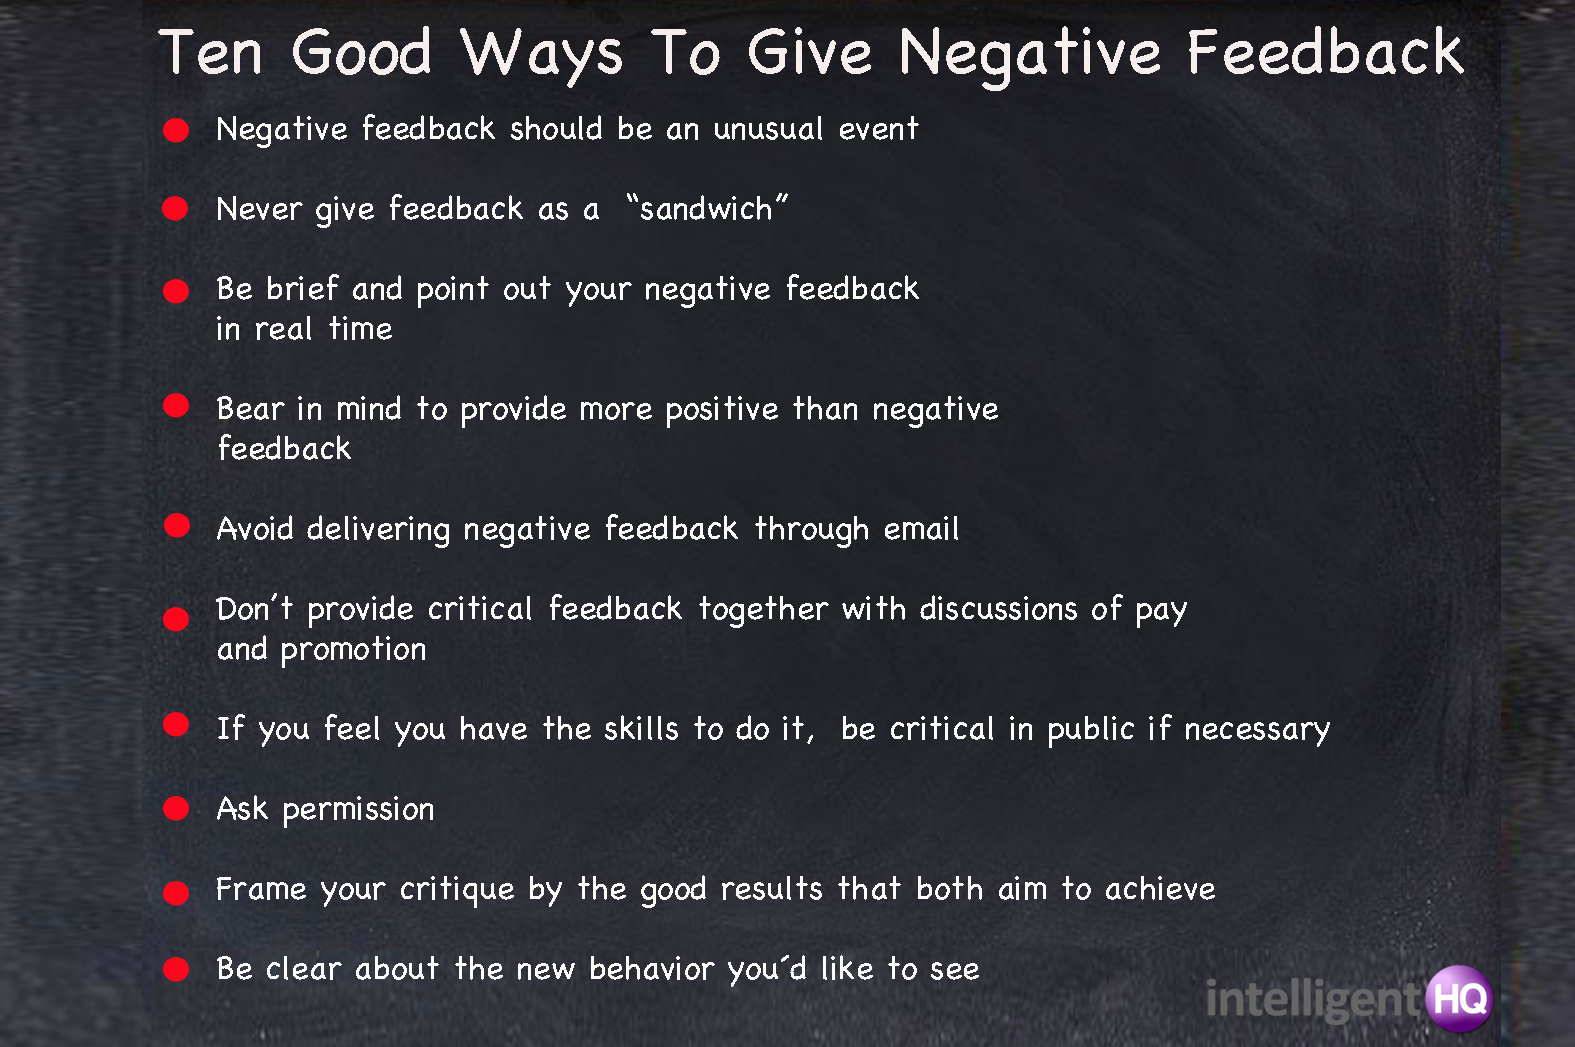 How to deliver bad news to employees - Ten Good Ways To Give Negative Feedback Intelligenthq